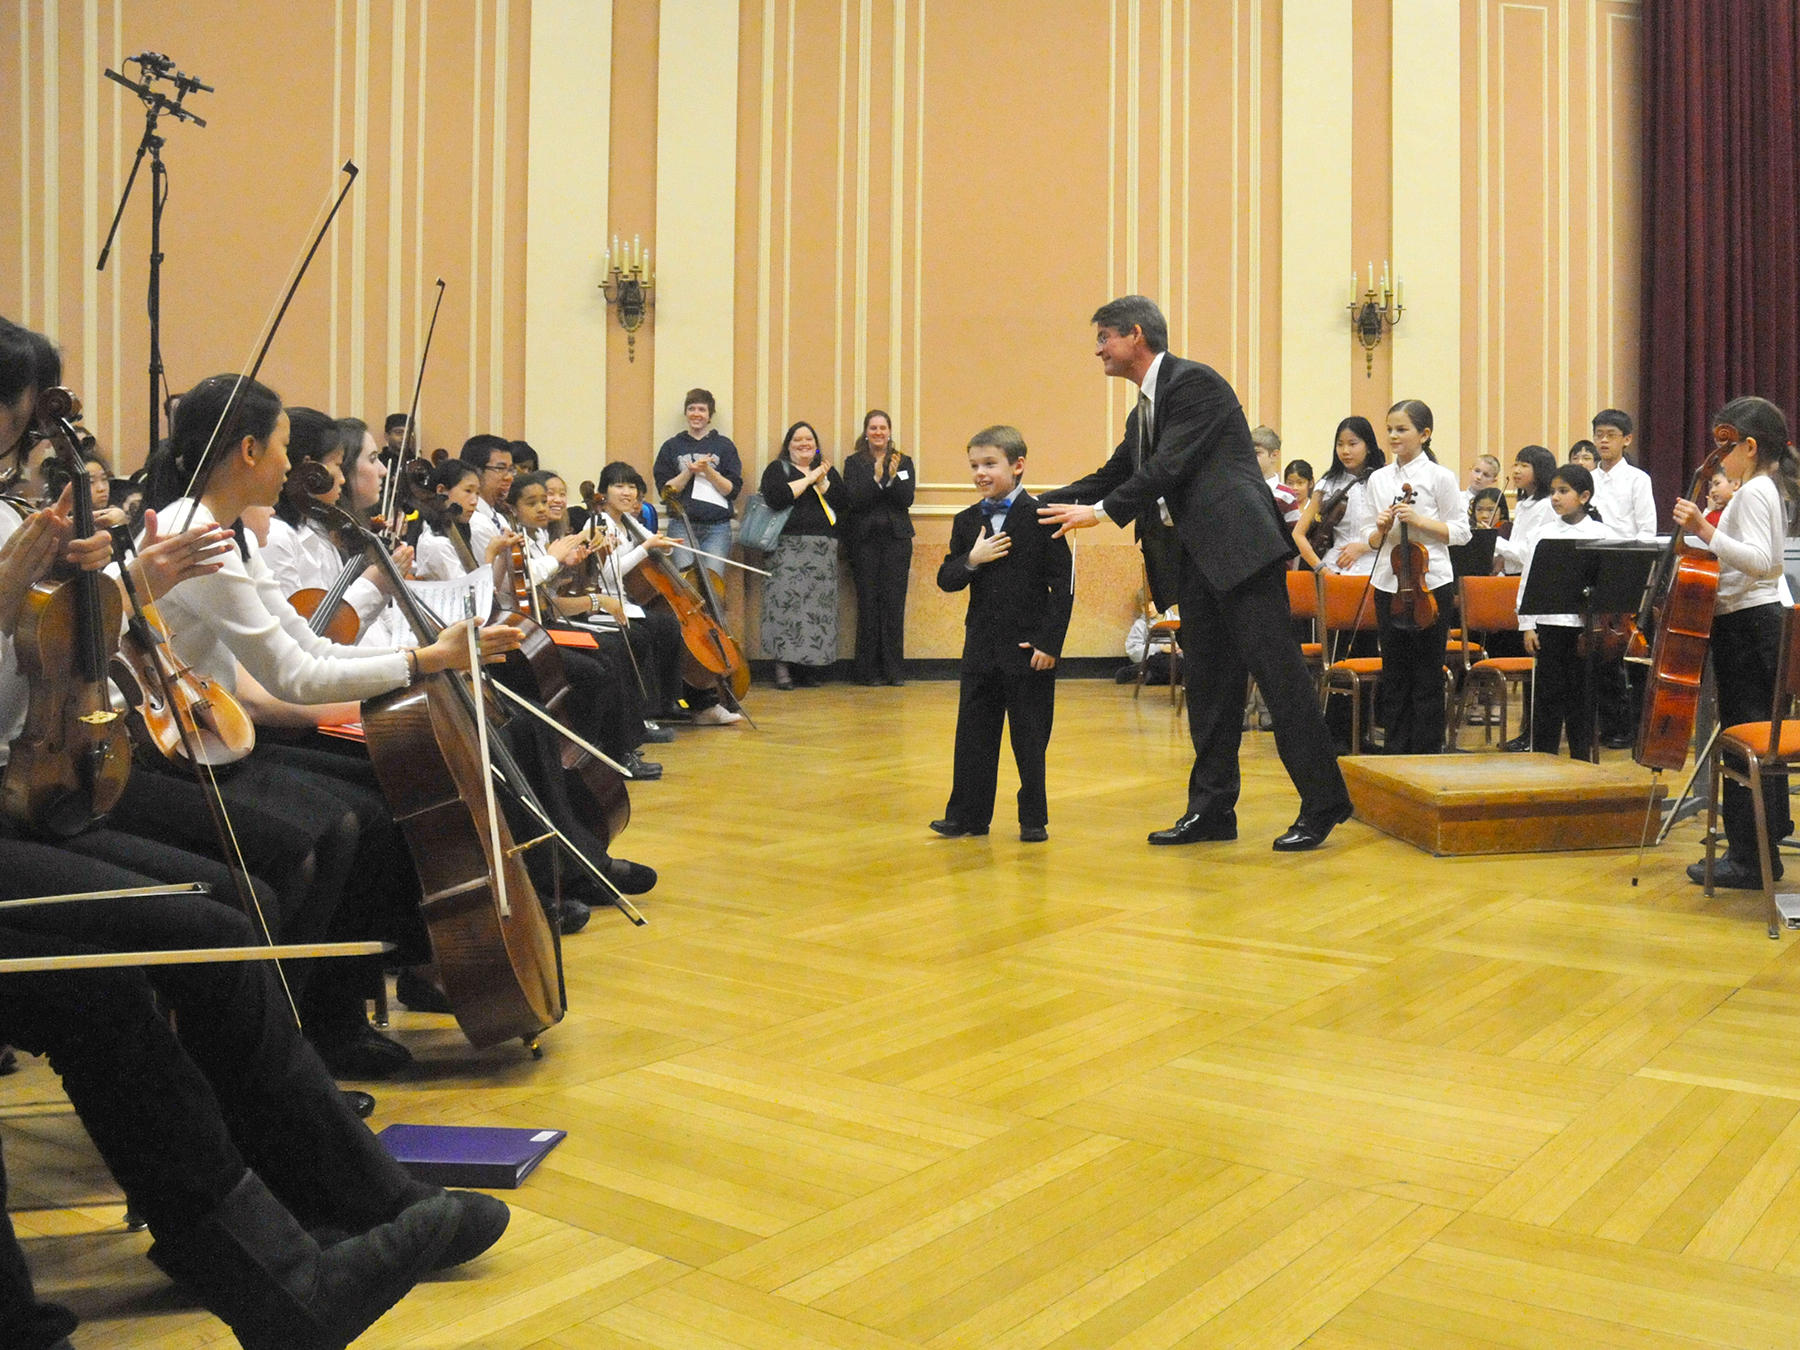 A Prep student composer takes a bow